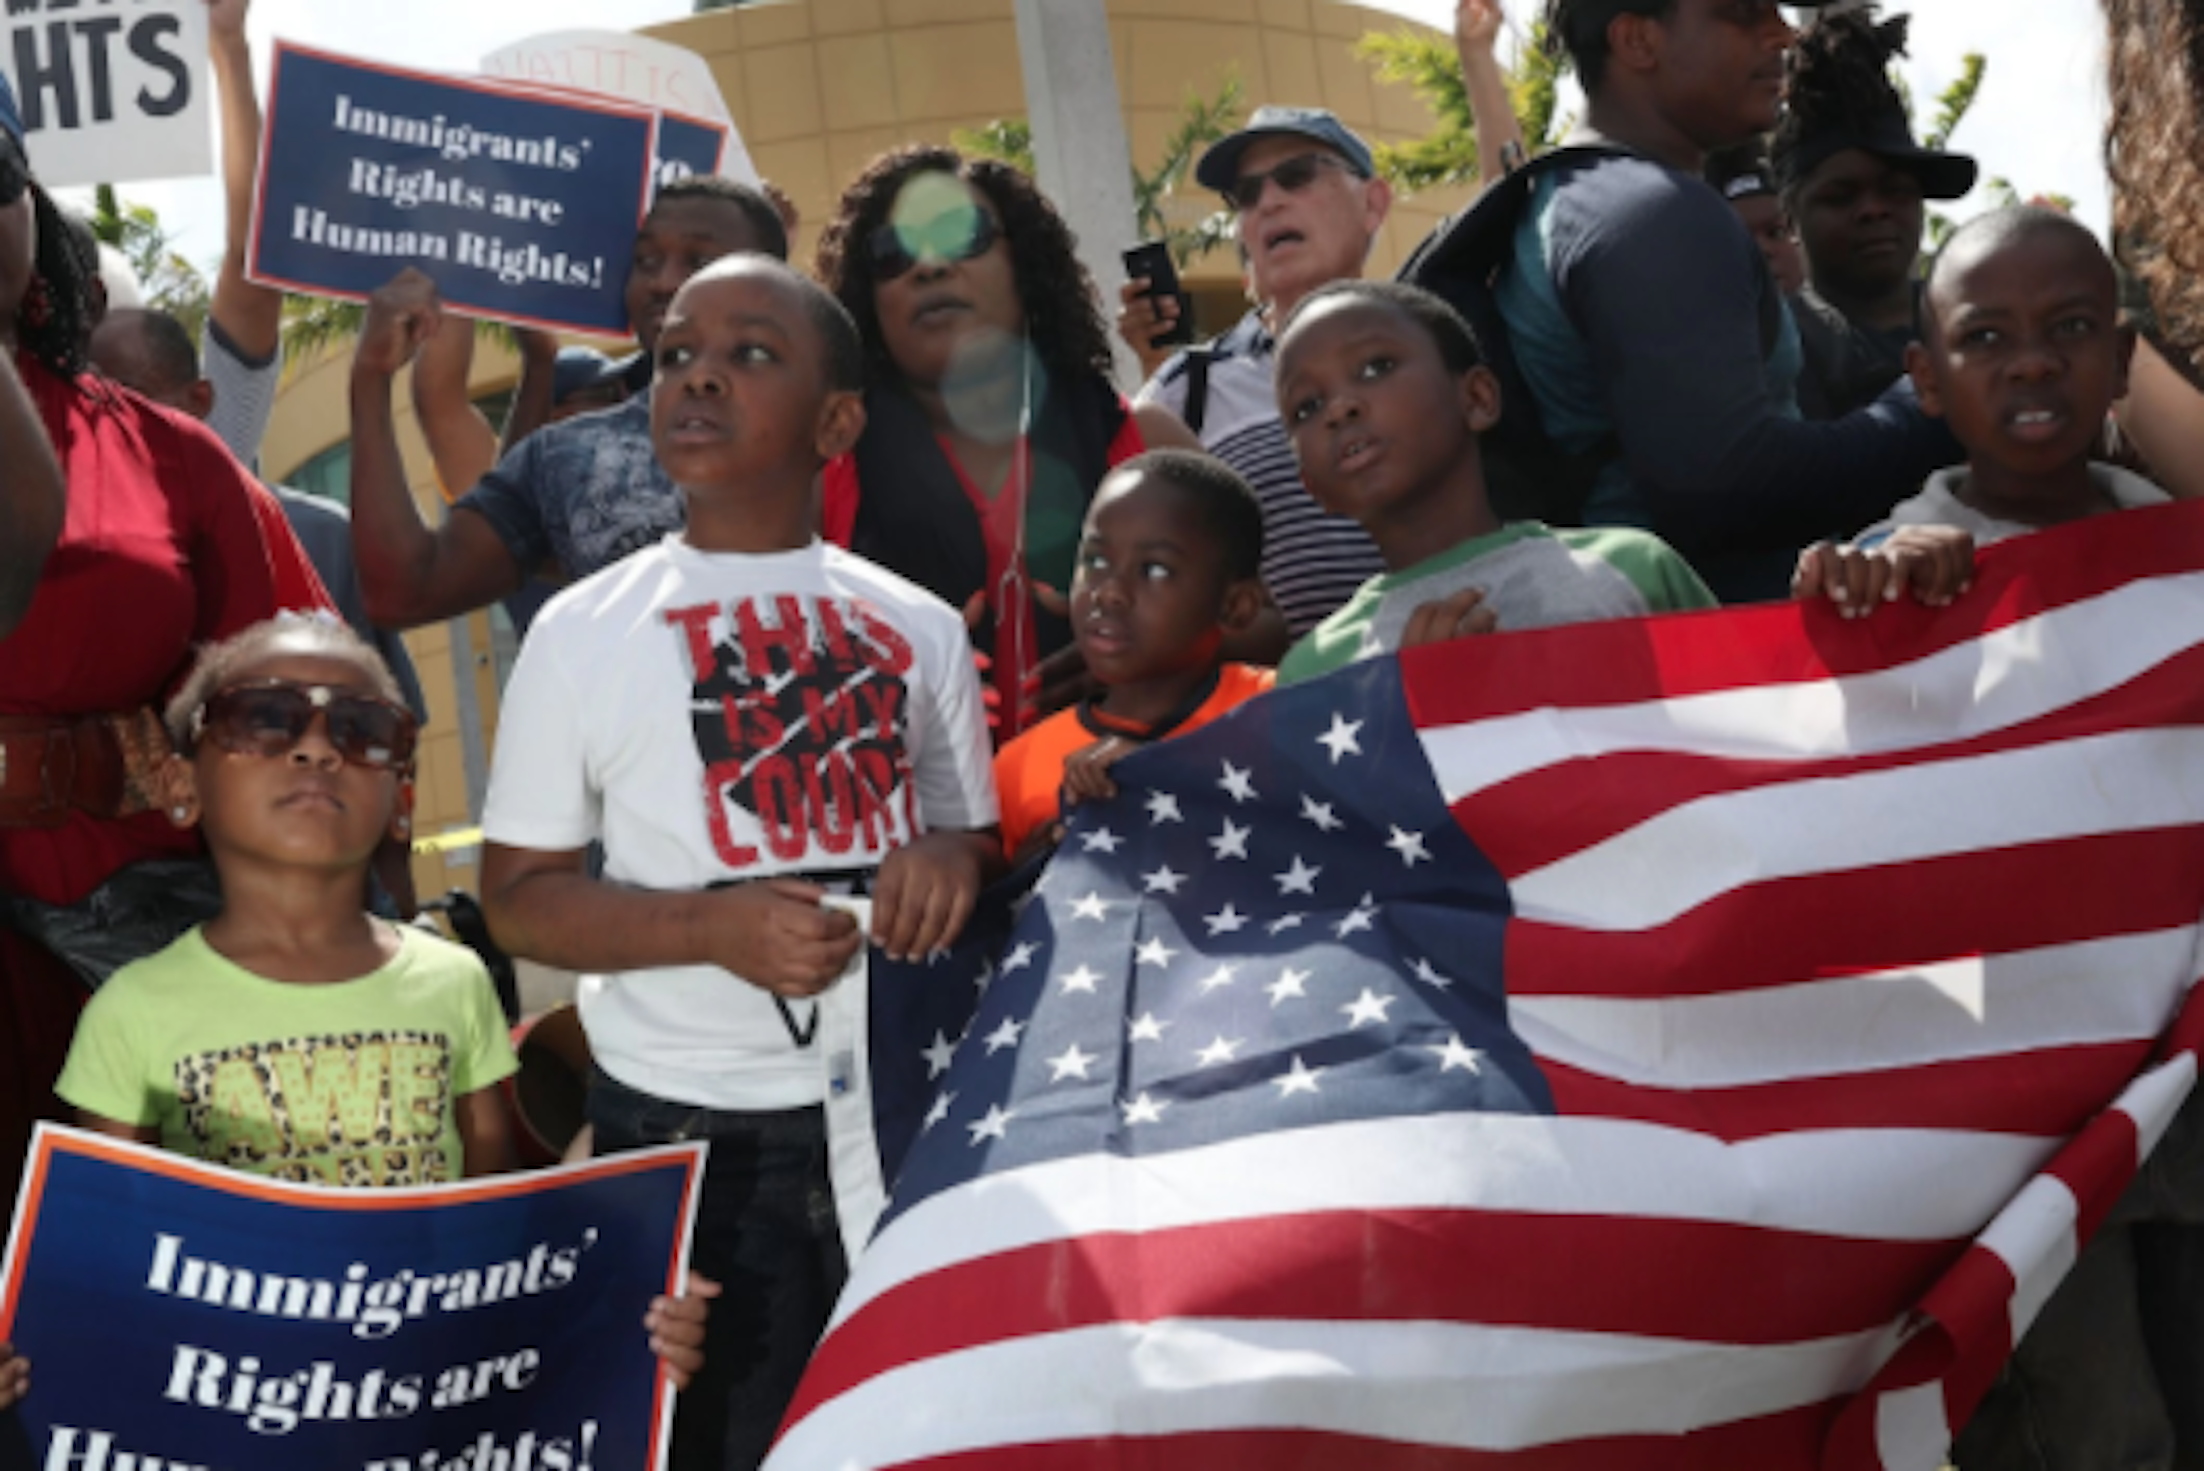 HAITI NEWS AND VIEWS: Tens of thousands of Haitian, Central American immigrants could lose protected status